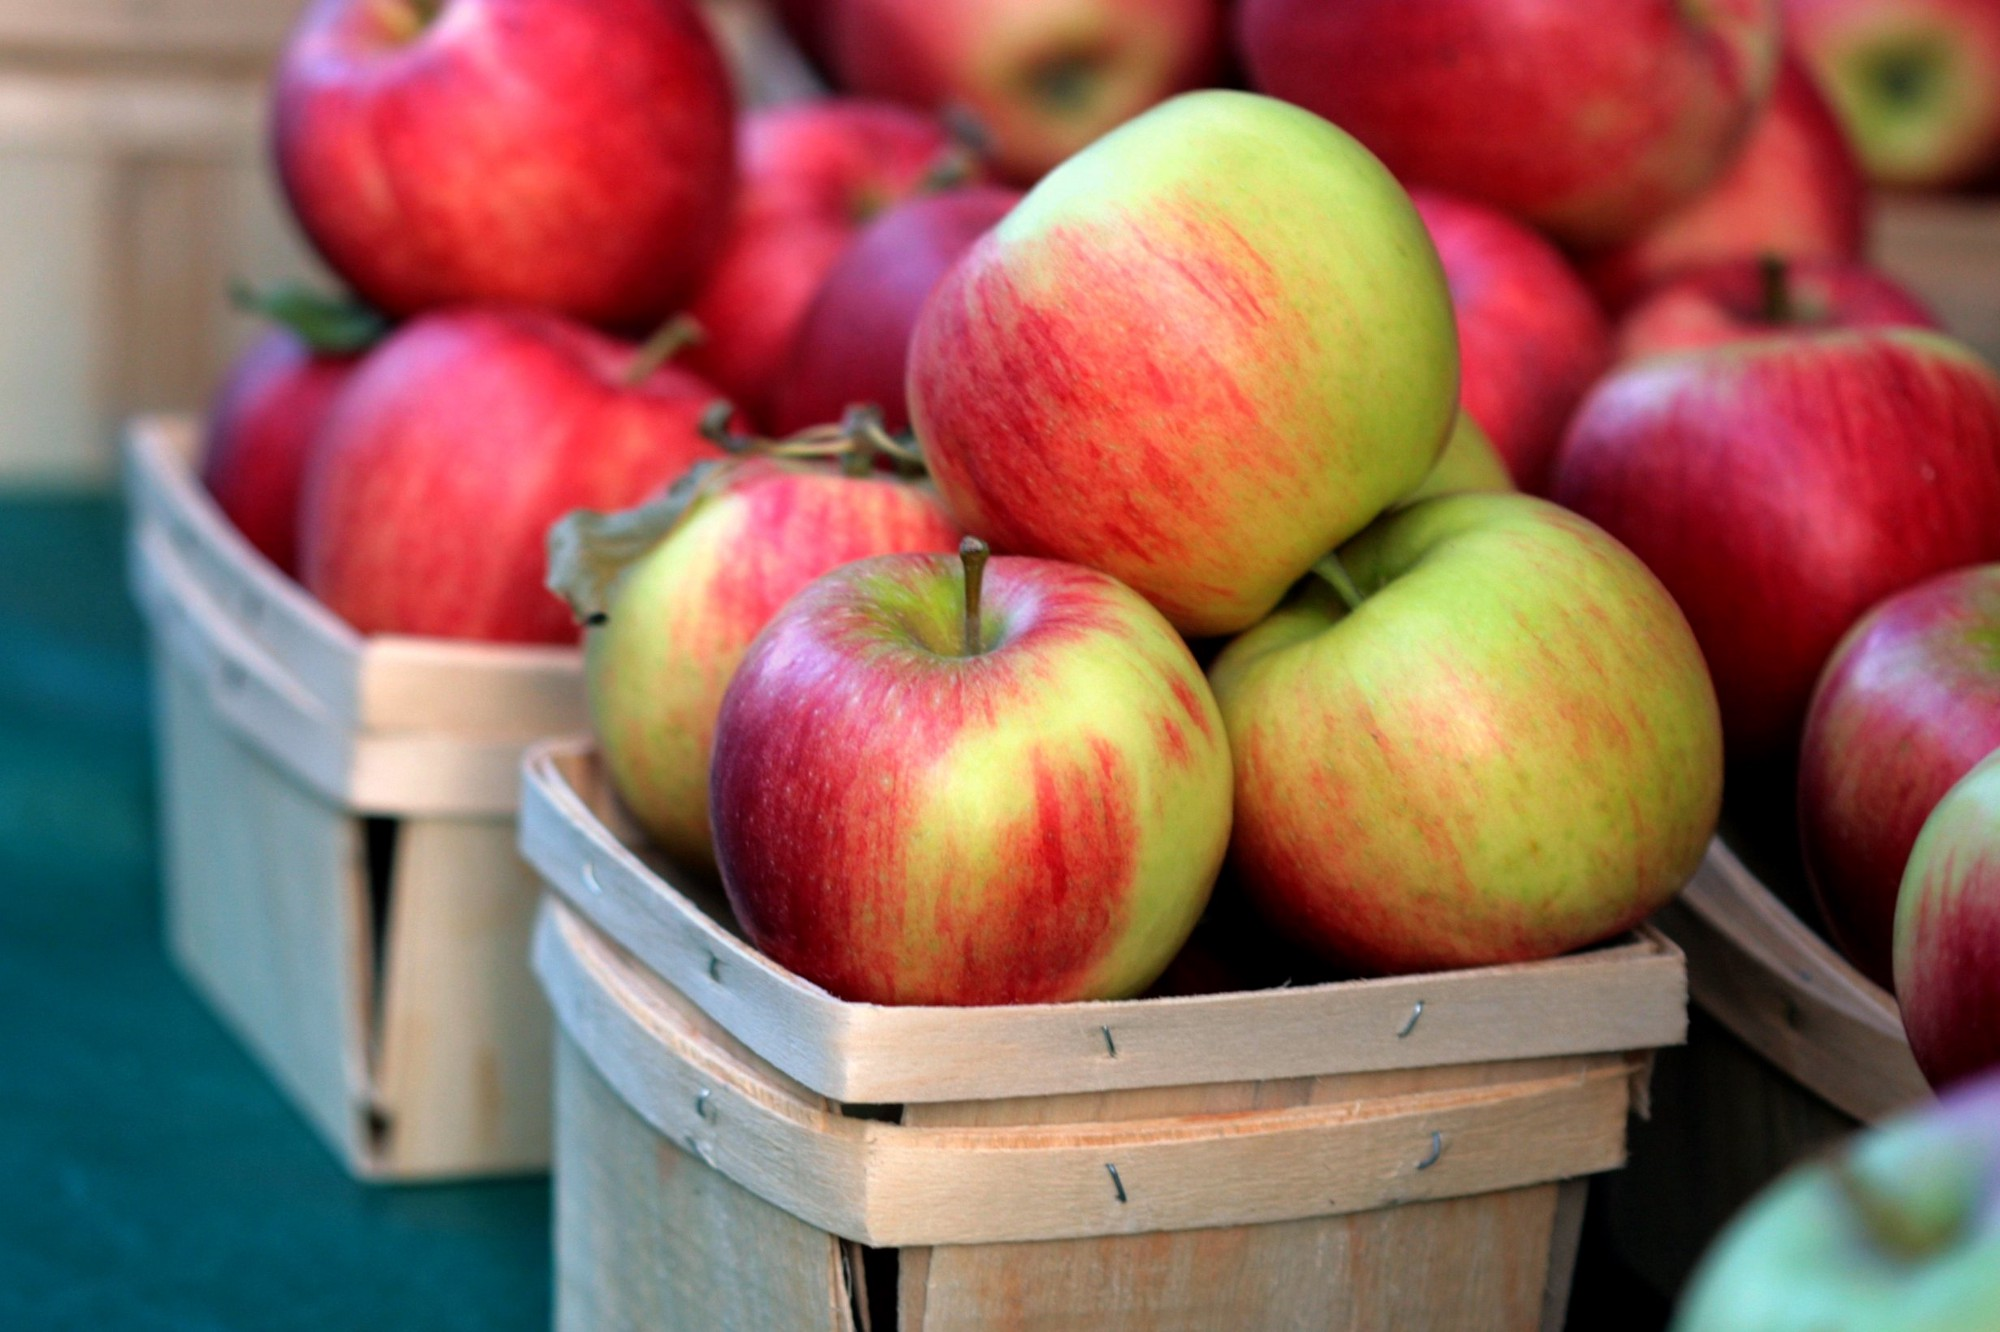 Red apples in small wooden baskets for sale at a farmers market.